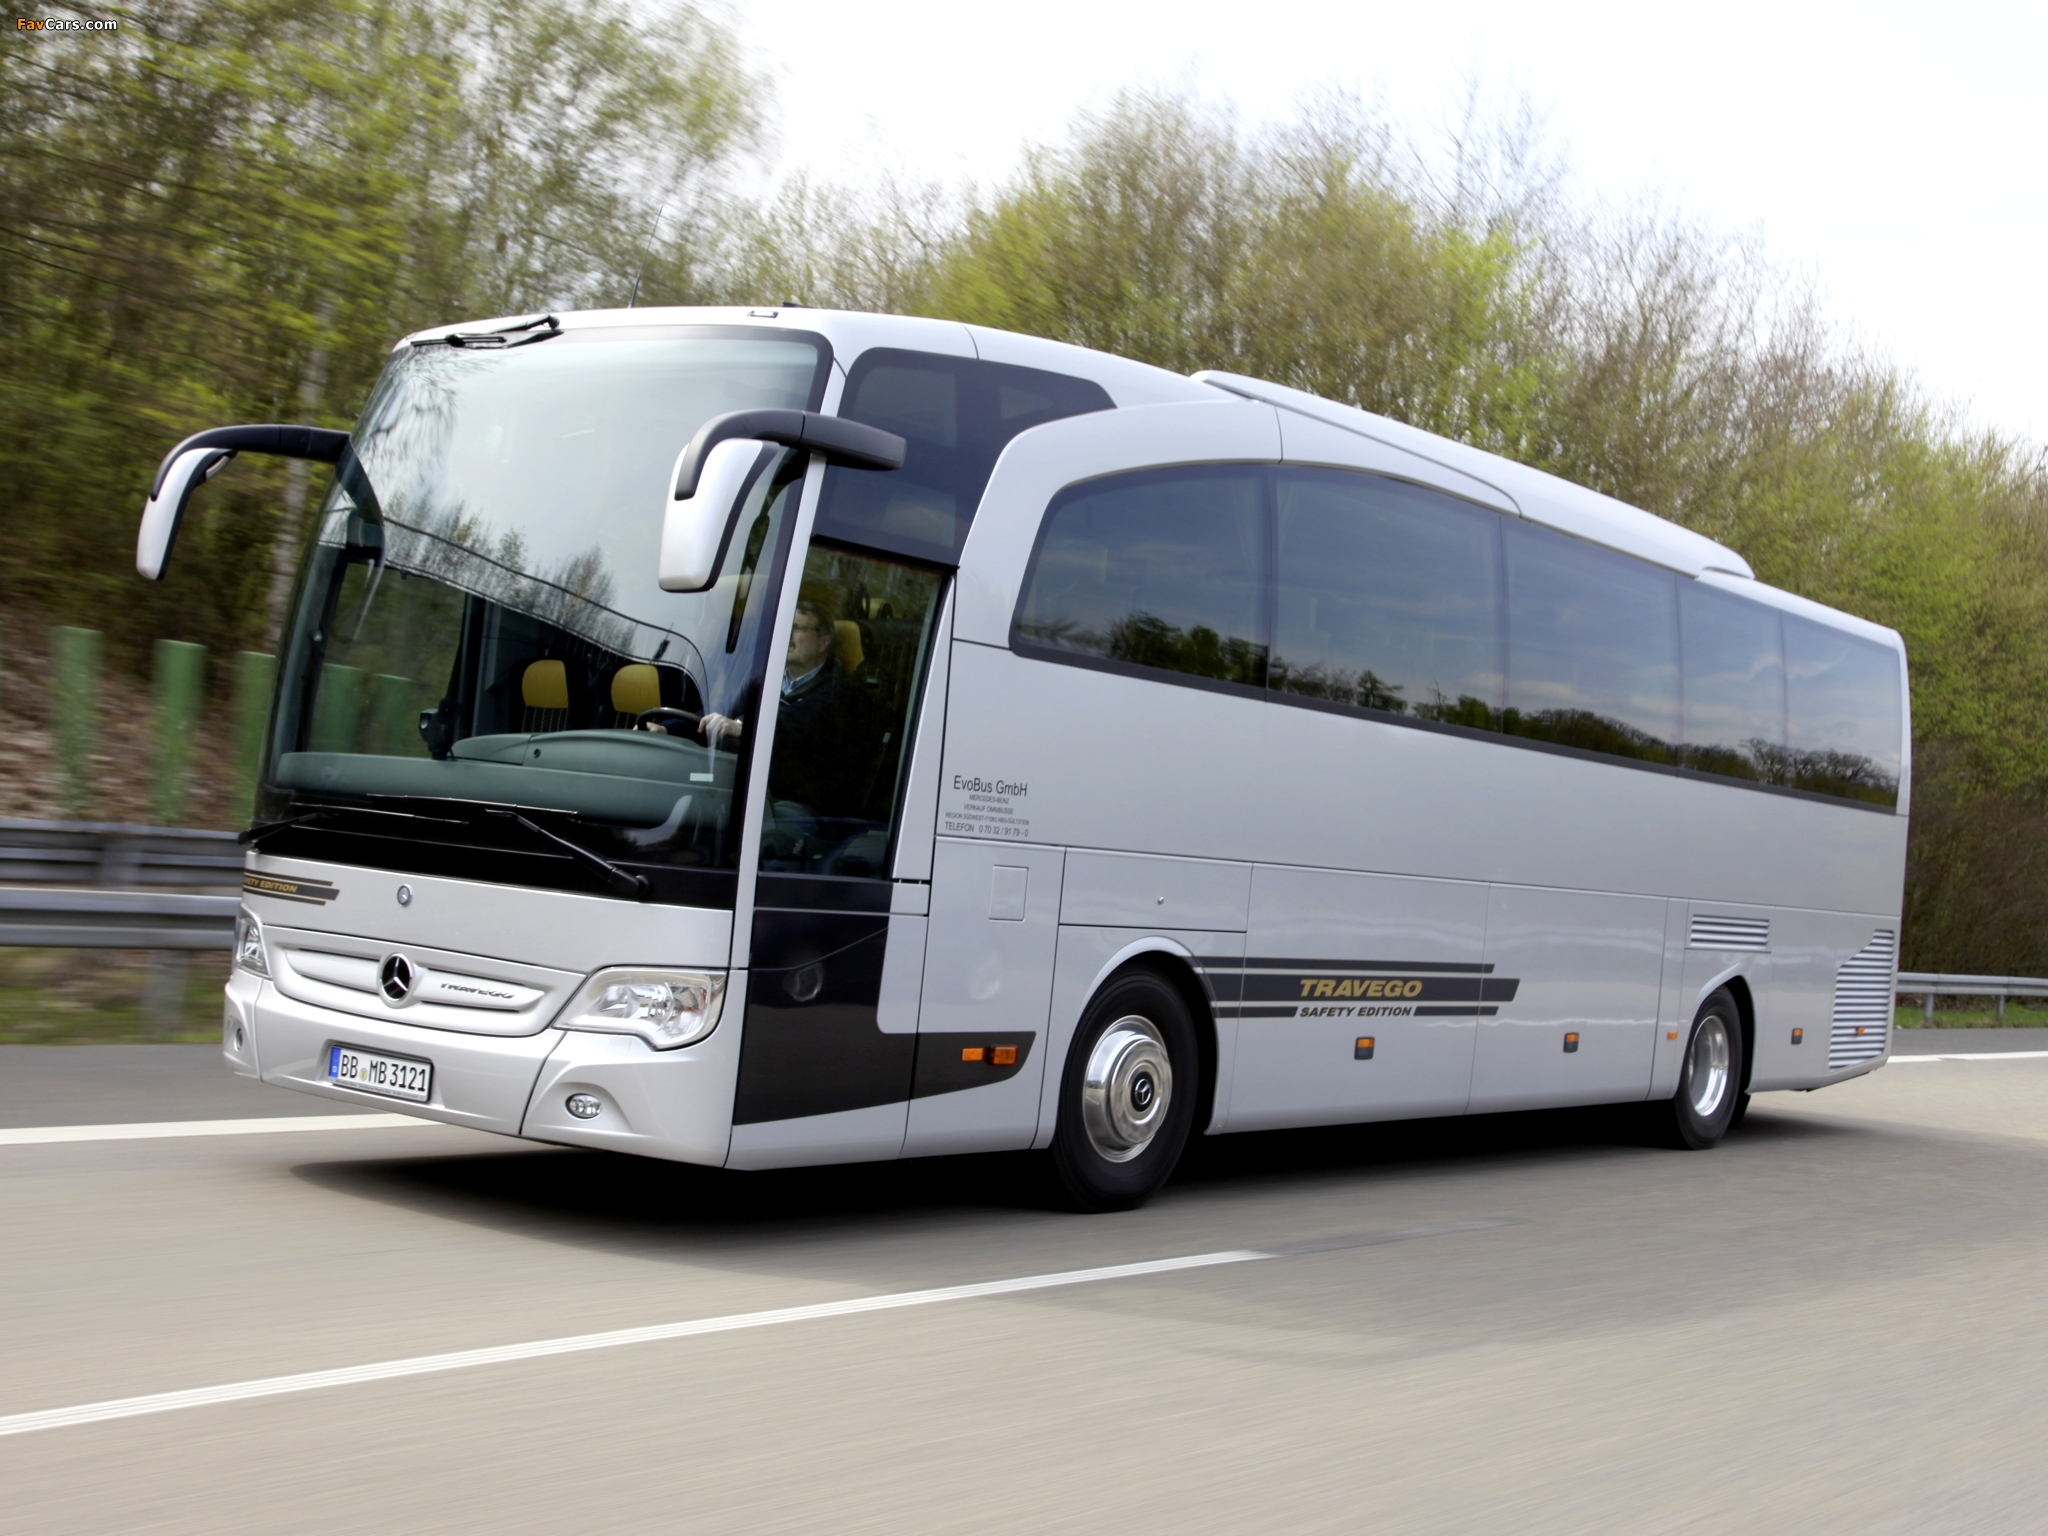 2048x1536 Car Wallpapers Mercedes Benz Travego O580 2008 Wallpapers 2048x1536